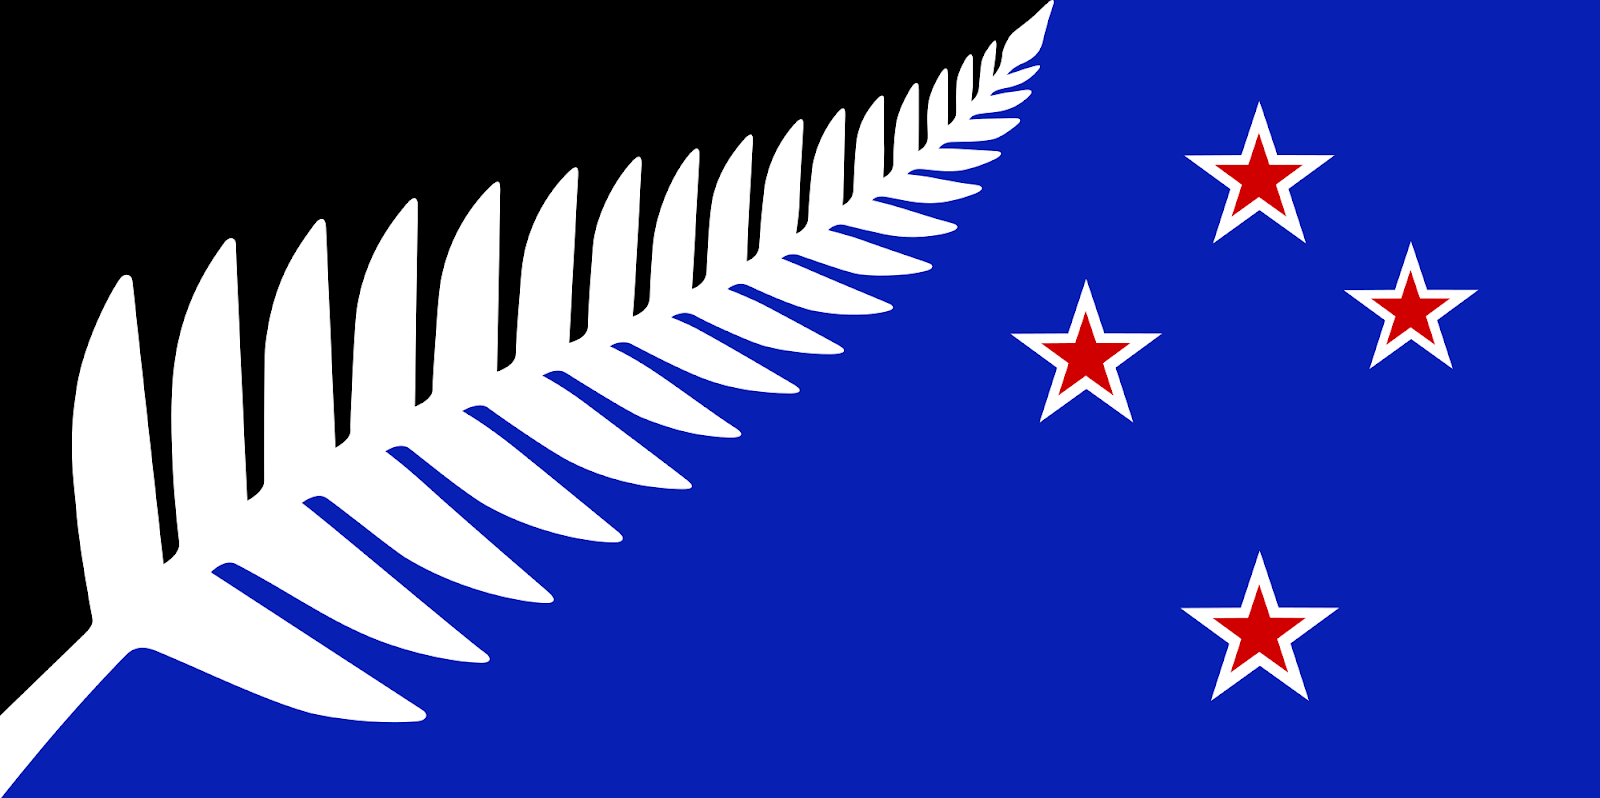 The silver fern flag of the